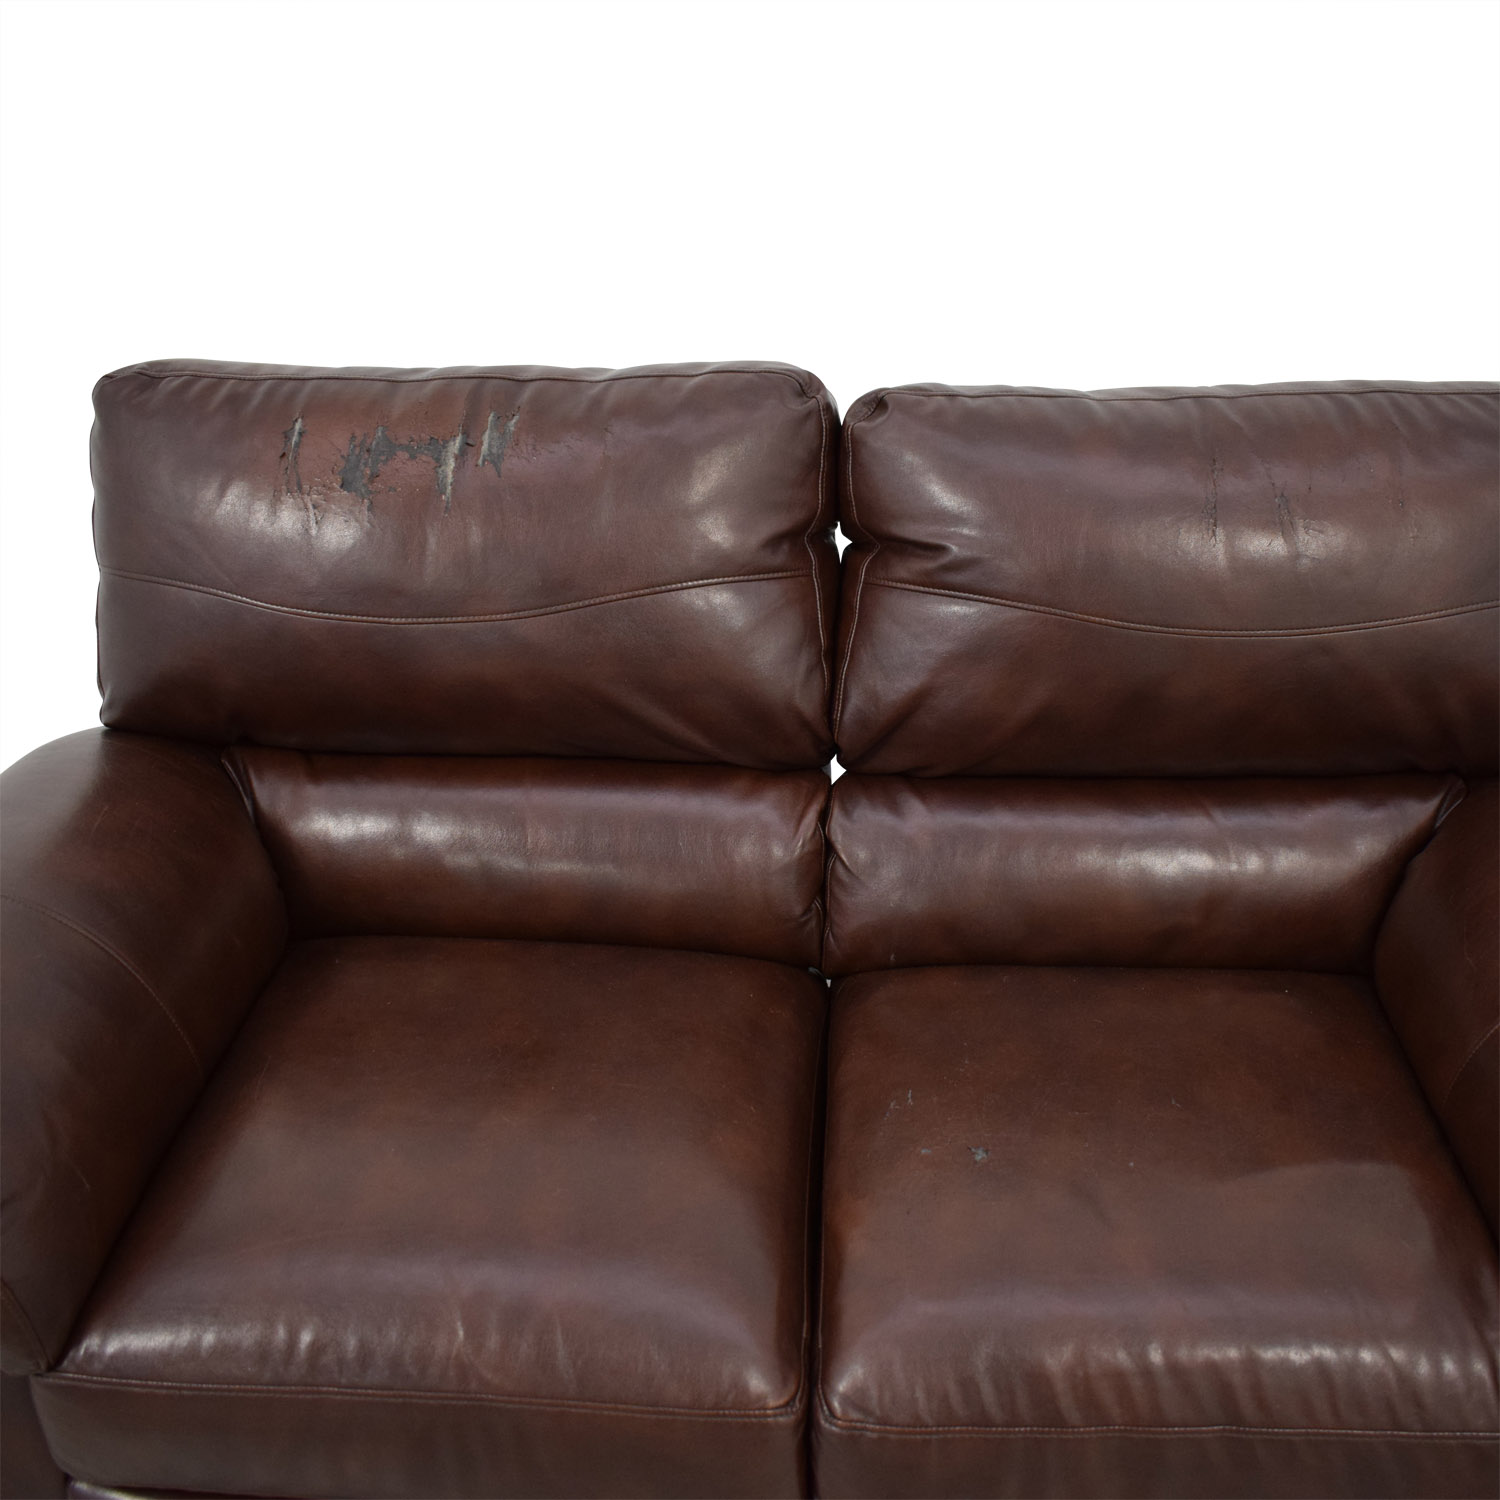 buy La-Z-Boy La-Z-Boy Oscar Reclining Loveseat online